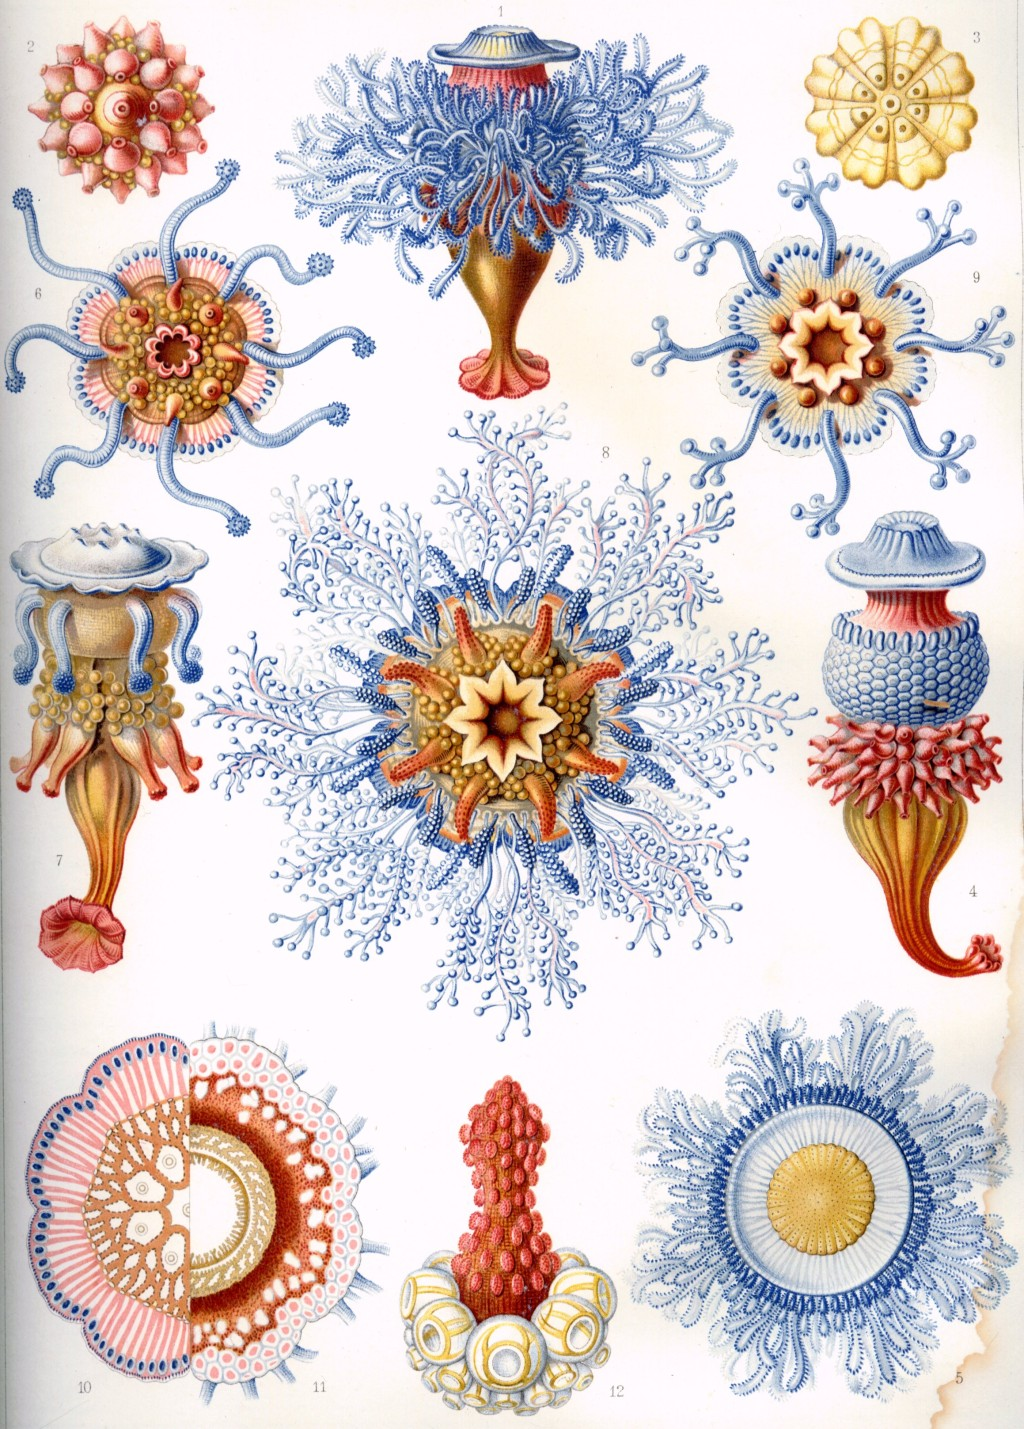 Ernst Haeckel: art and science through the microscope